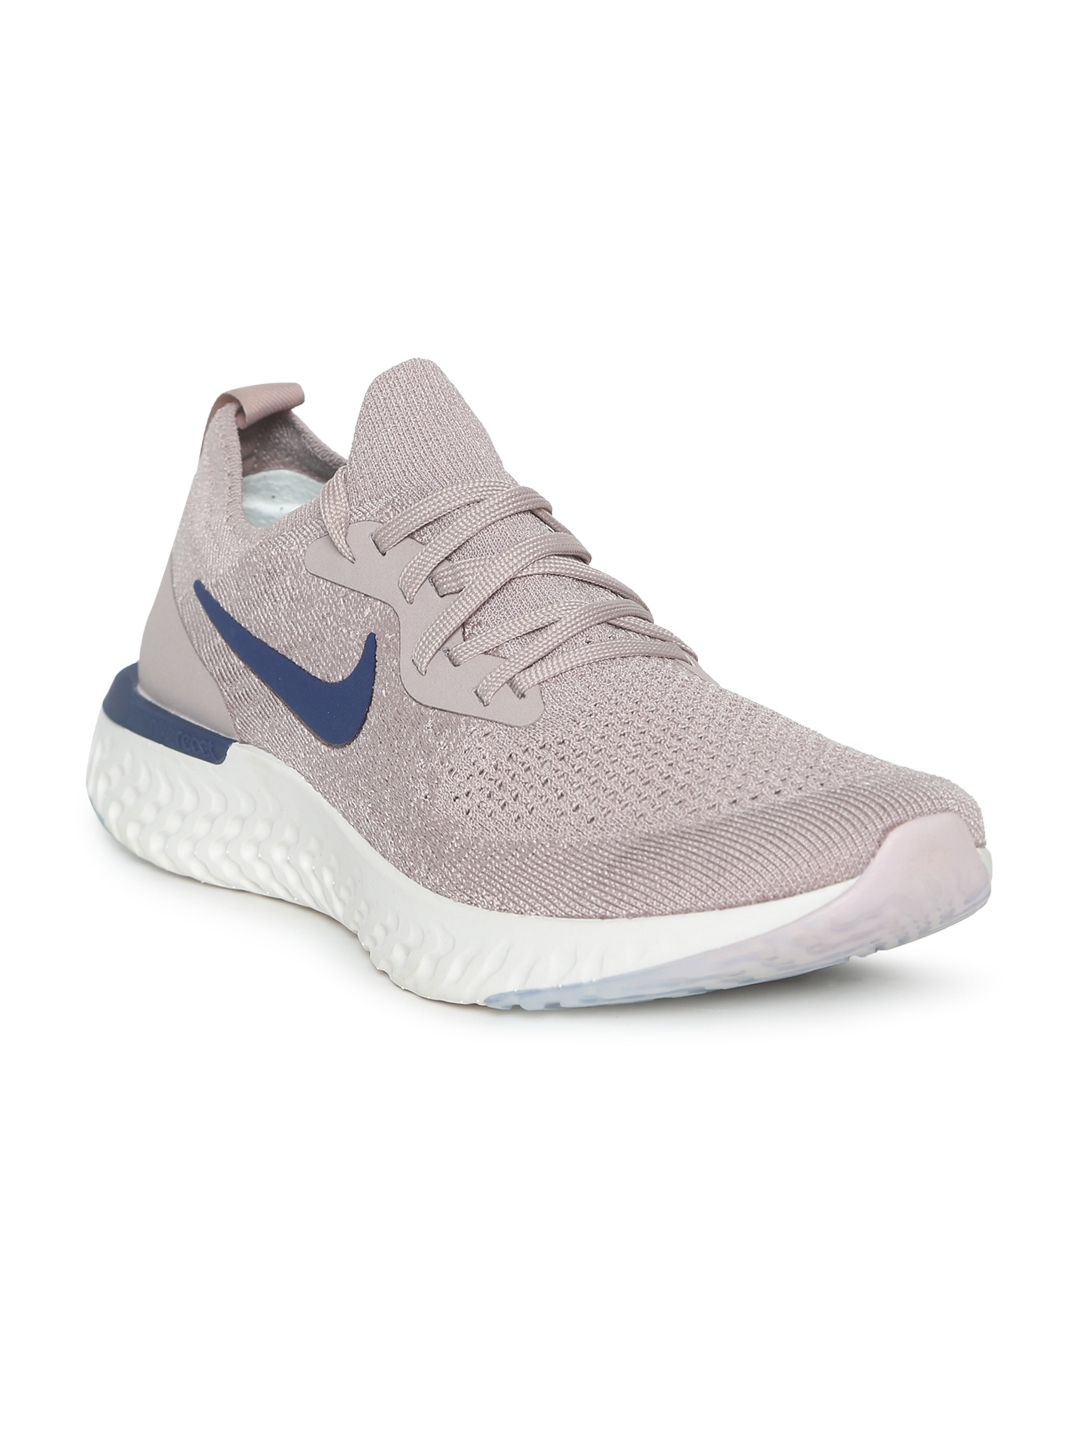 bc66092a2fb1 Buy Nike Men Taupe Epic React Flyknit Running Shoes - Sports Shoes ...